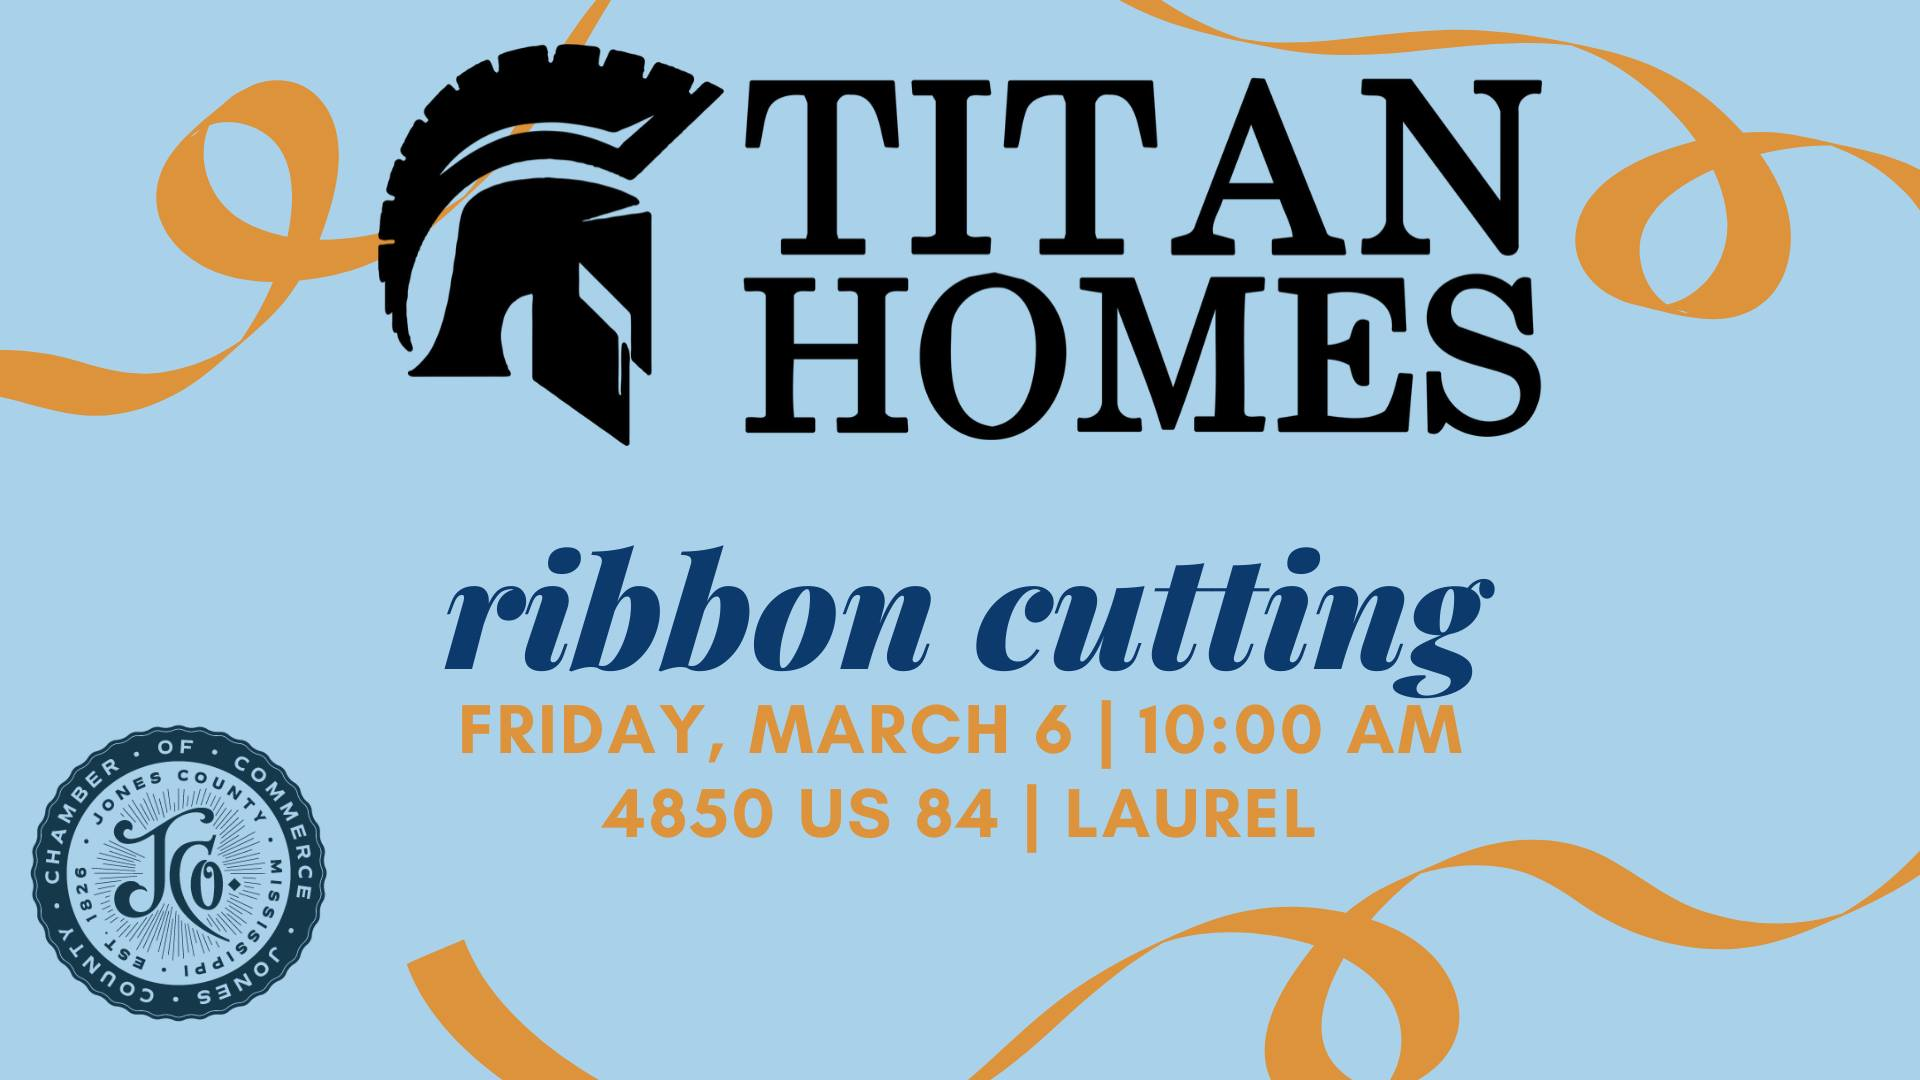 The City of Laurel, Titan Homes of Laurel Ribbon Cutting